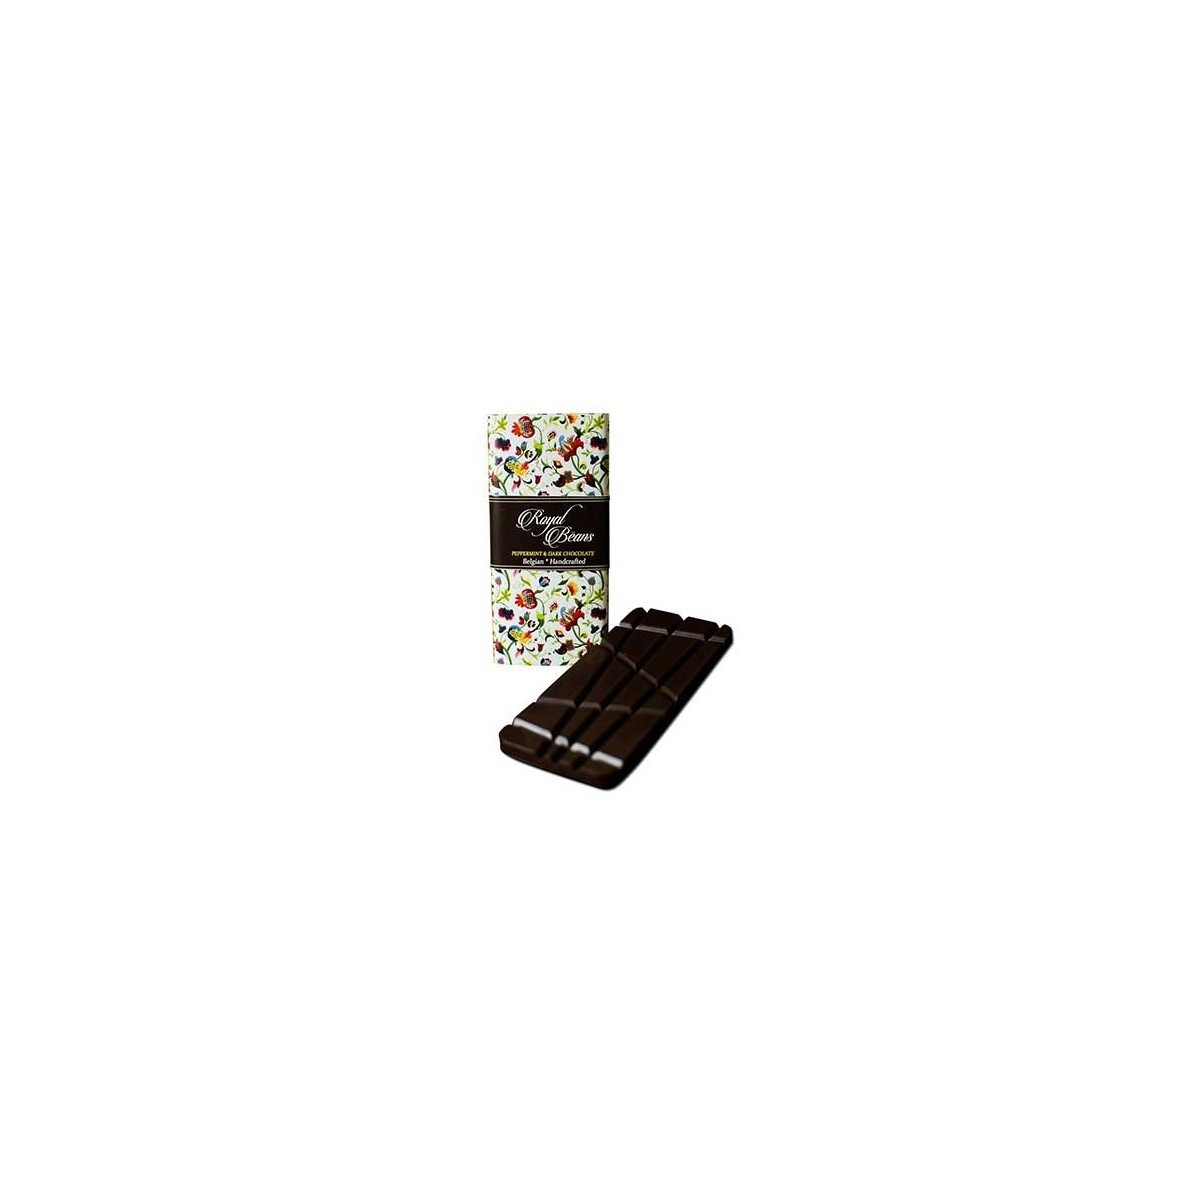 Royal Beans - Peppermint & Dark Chocolate Bar